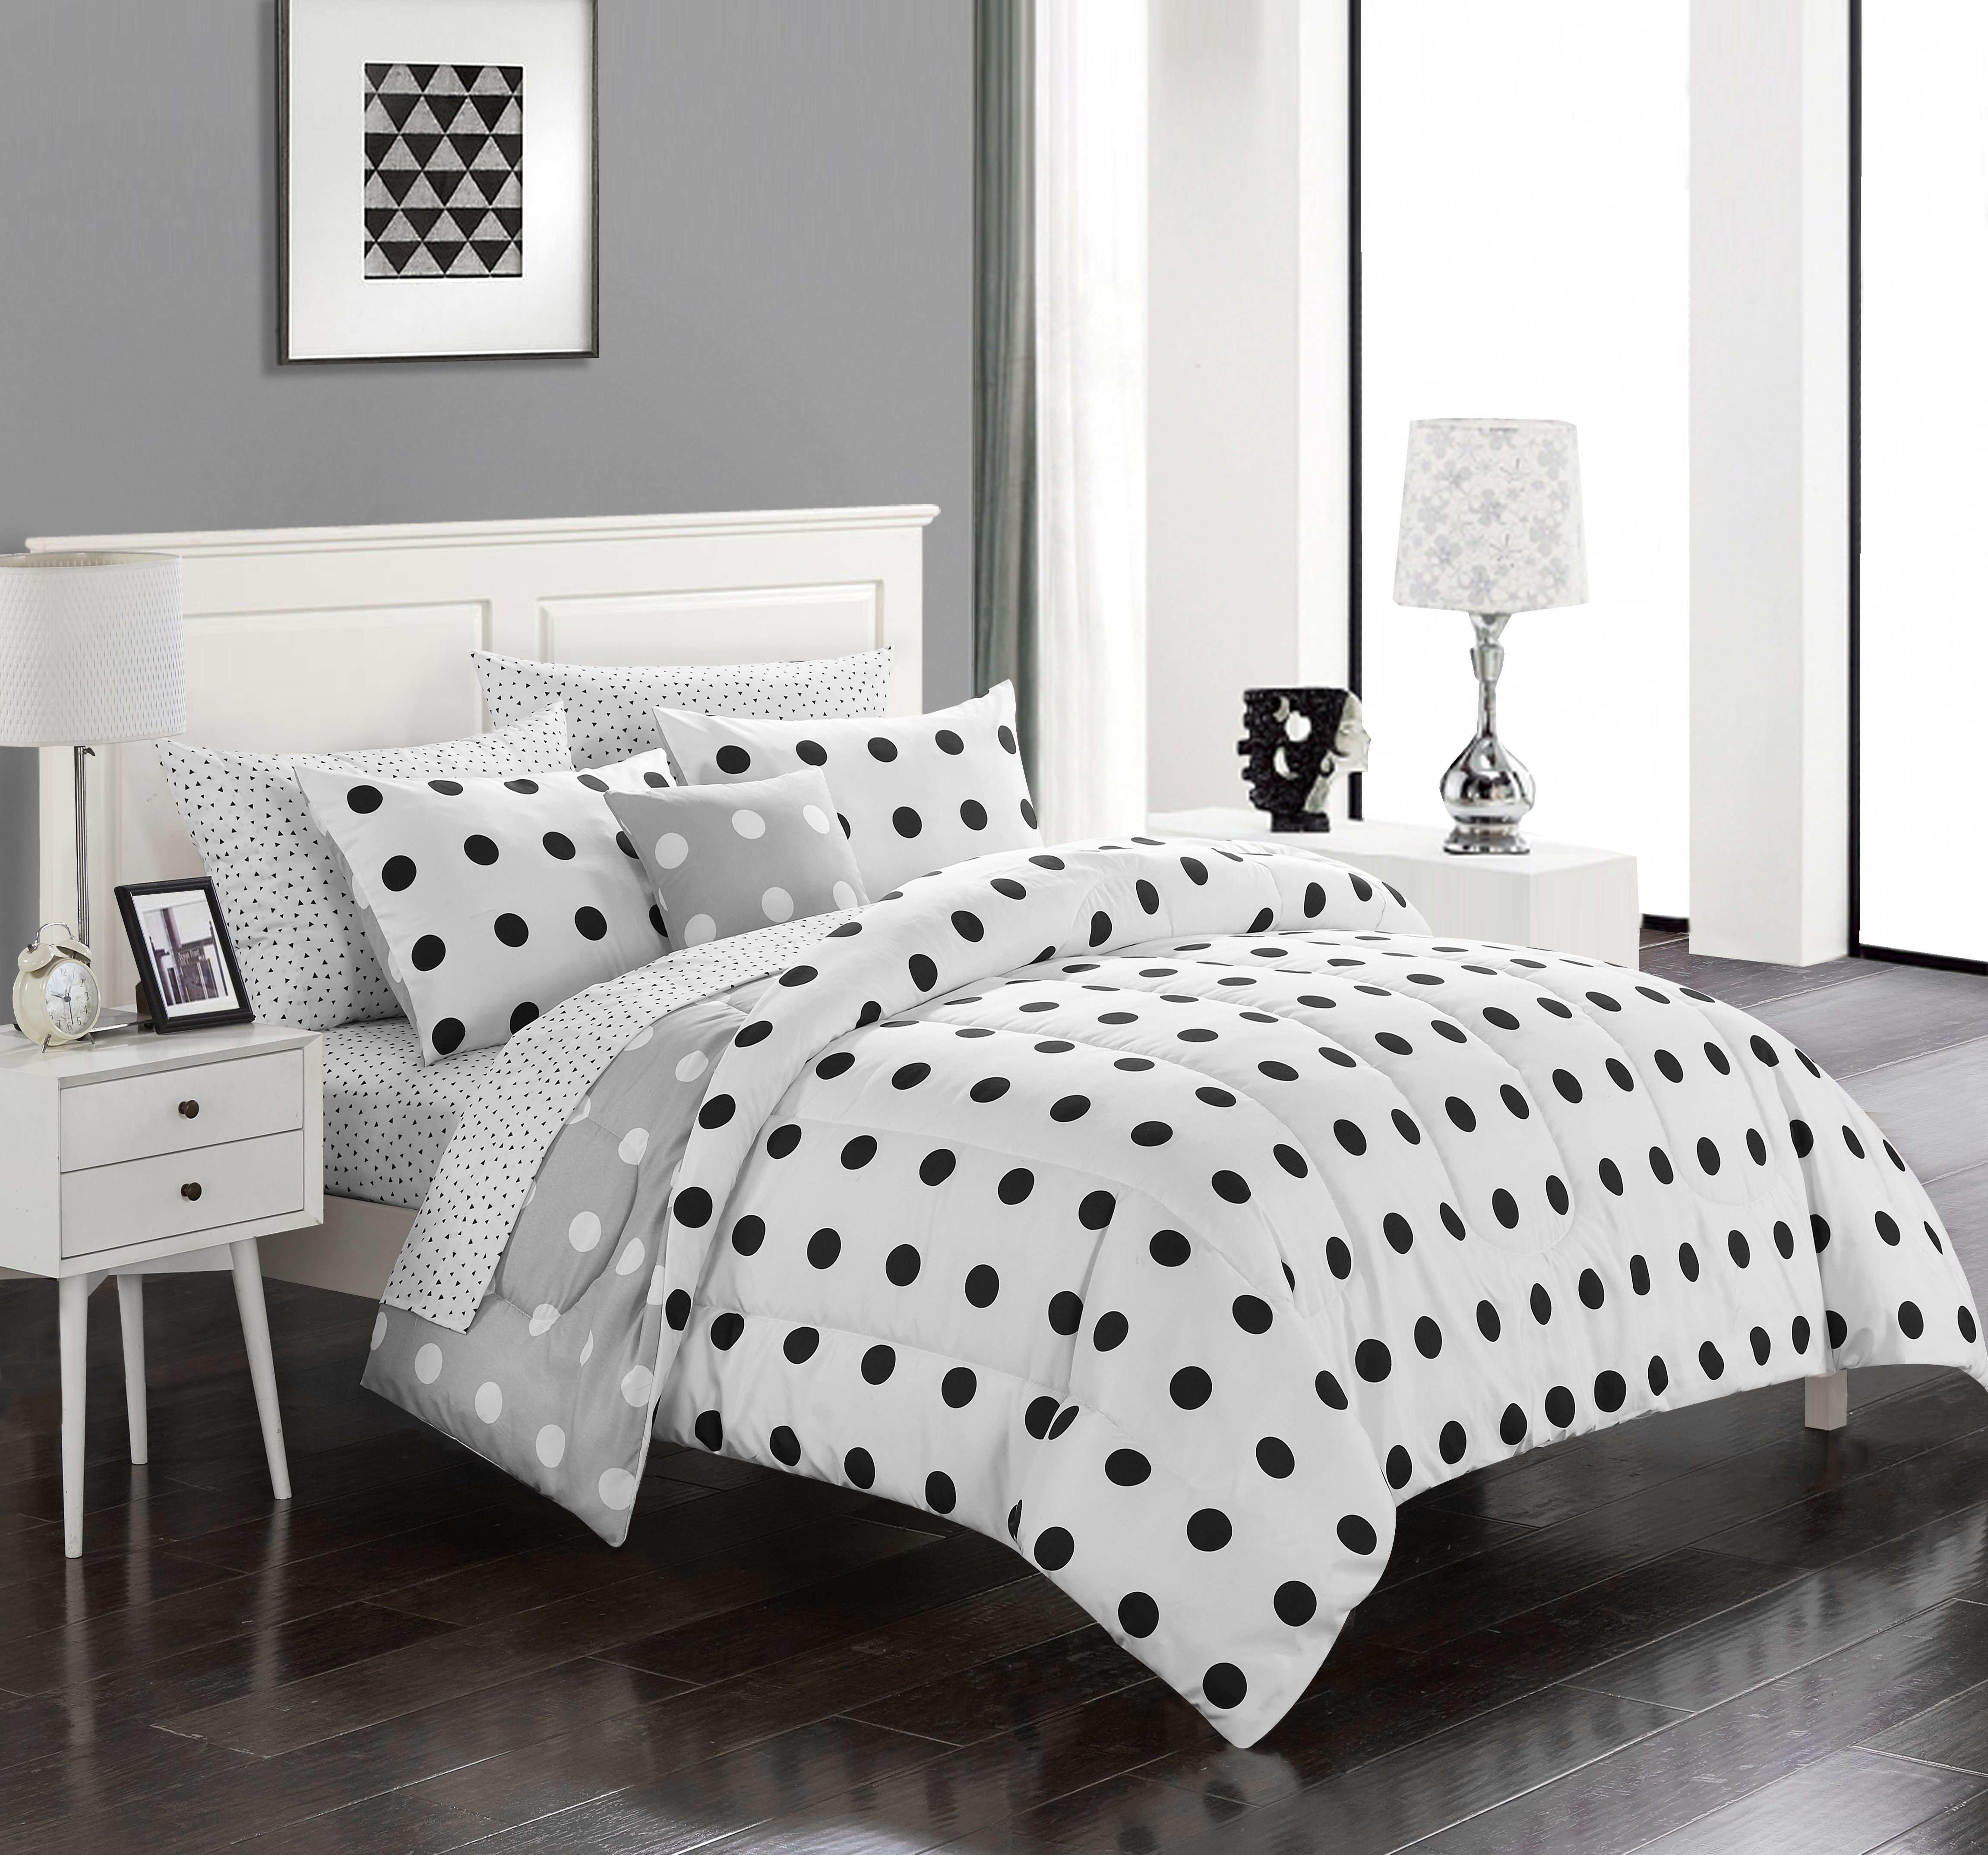 Mainstays Twin Maggie Bed in a Bag Bedding Set, 5 Piece